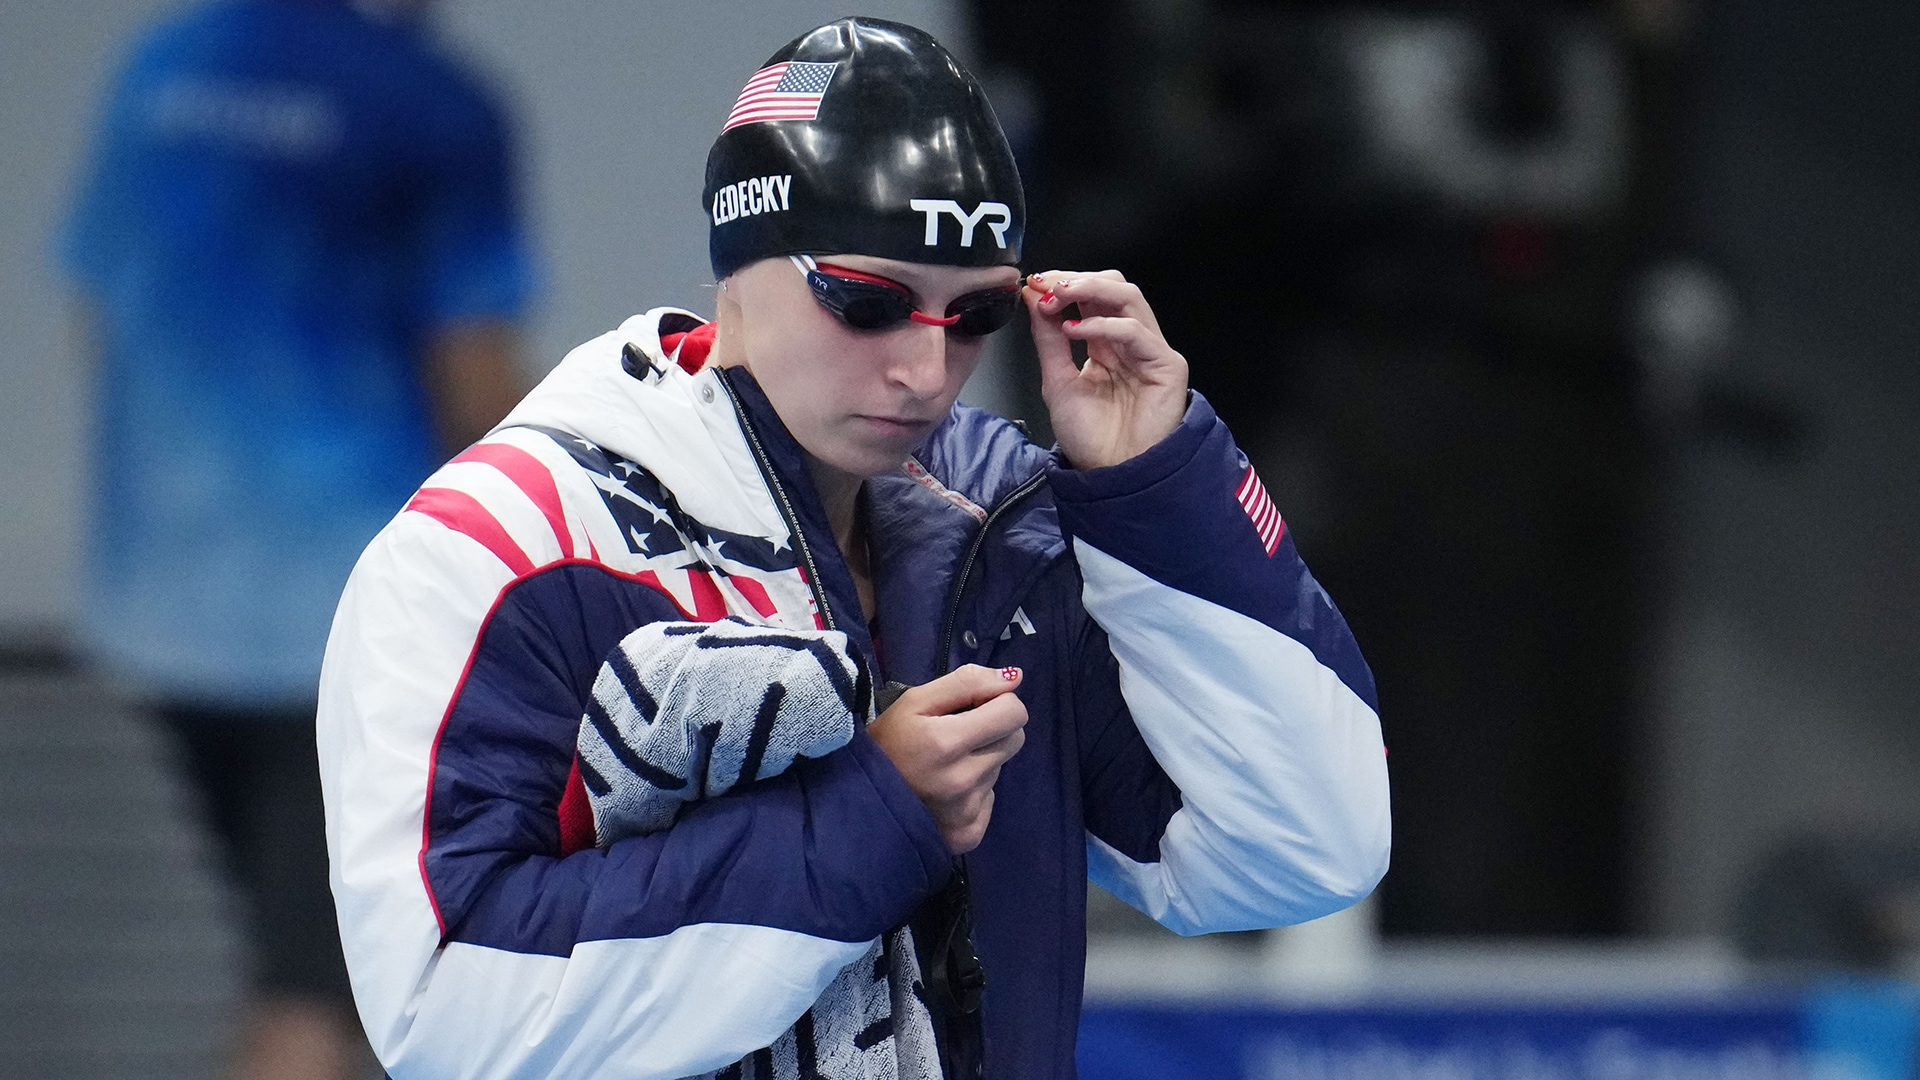 Katie Ledecky will become the first female swimmer in history to race the 200m freestyle and...